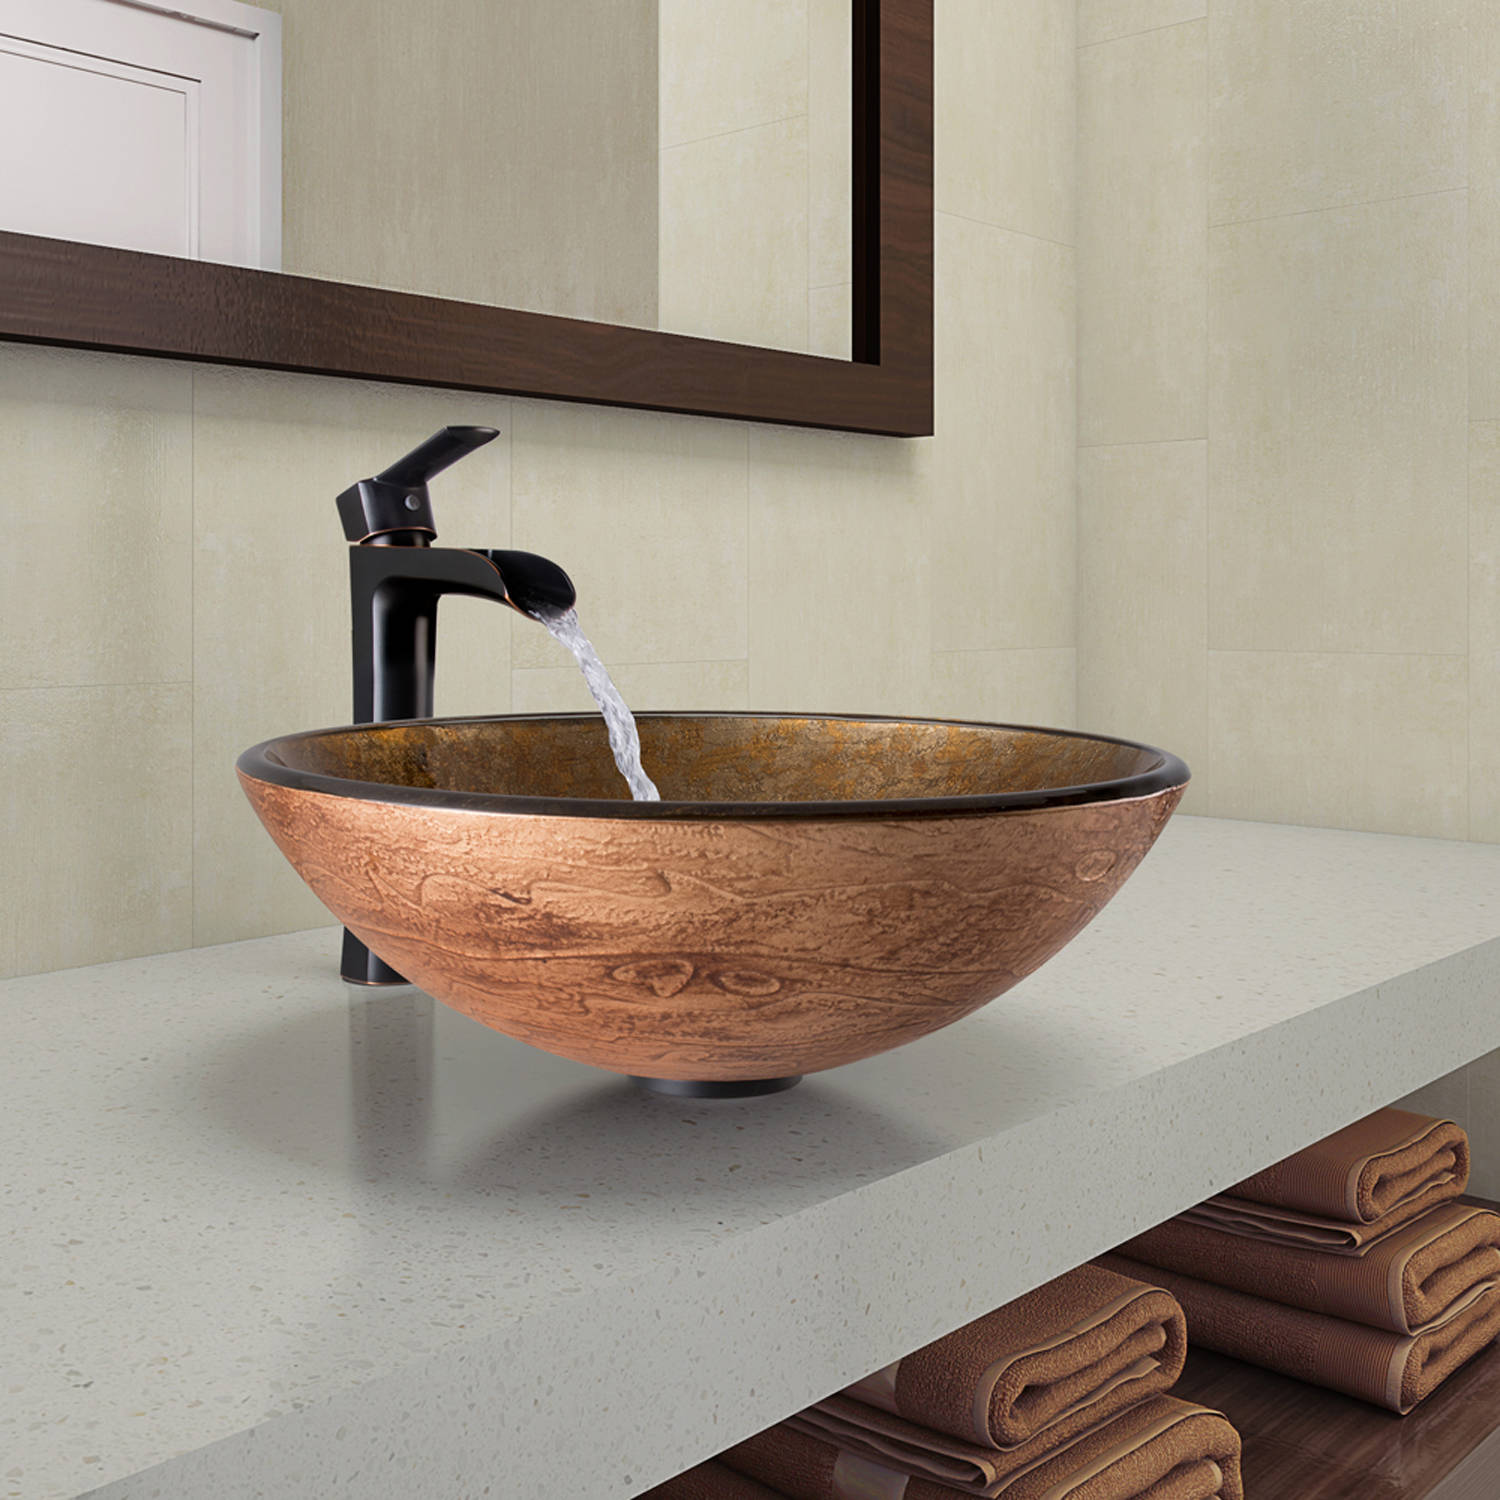 Vigo Cappuccino Swirl Glass Vessel Bathroom Sink and Niko Faucet Set in Antique Rubbed Bronze Finish